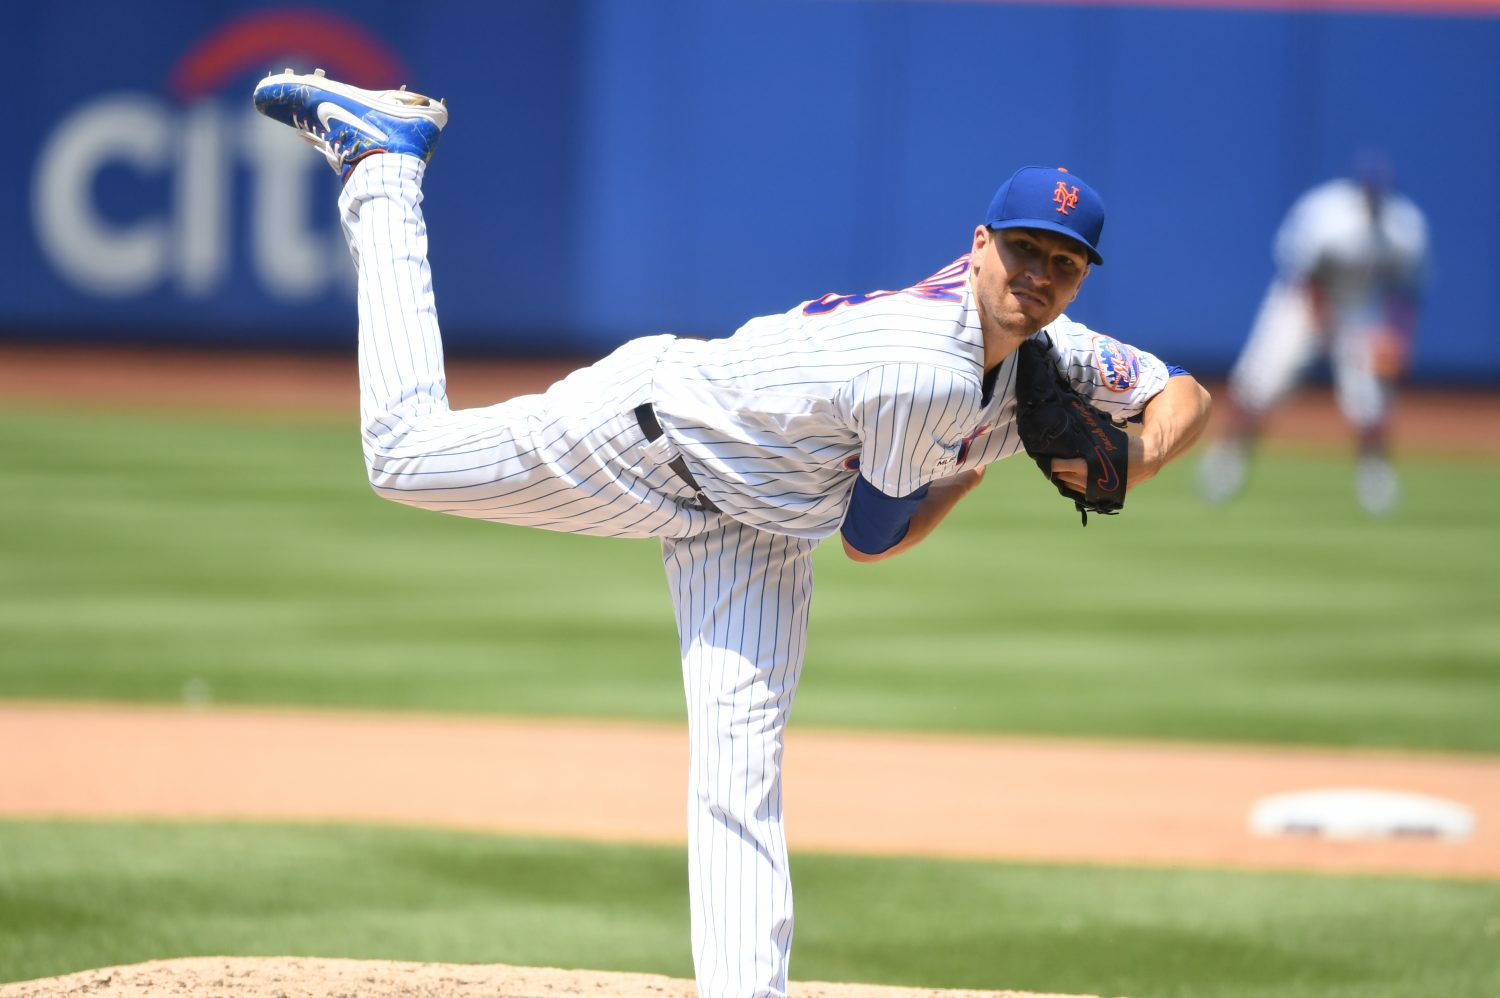 Jacob deGrom Releases Pitch in July 2019